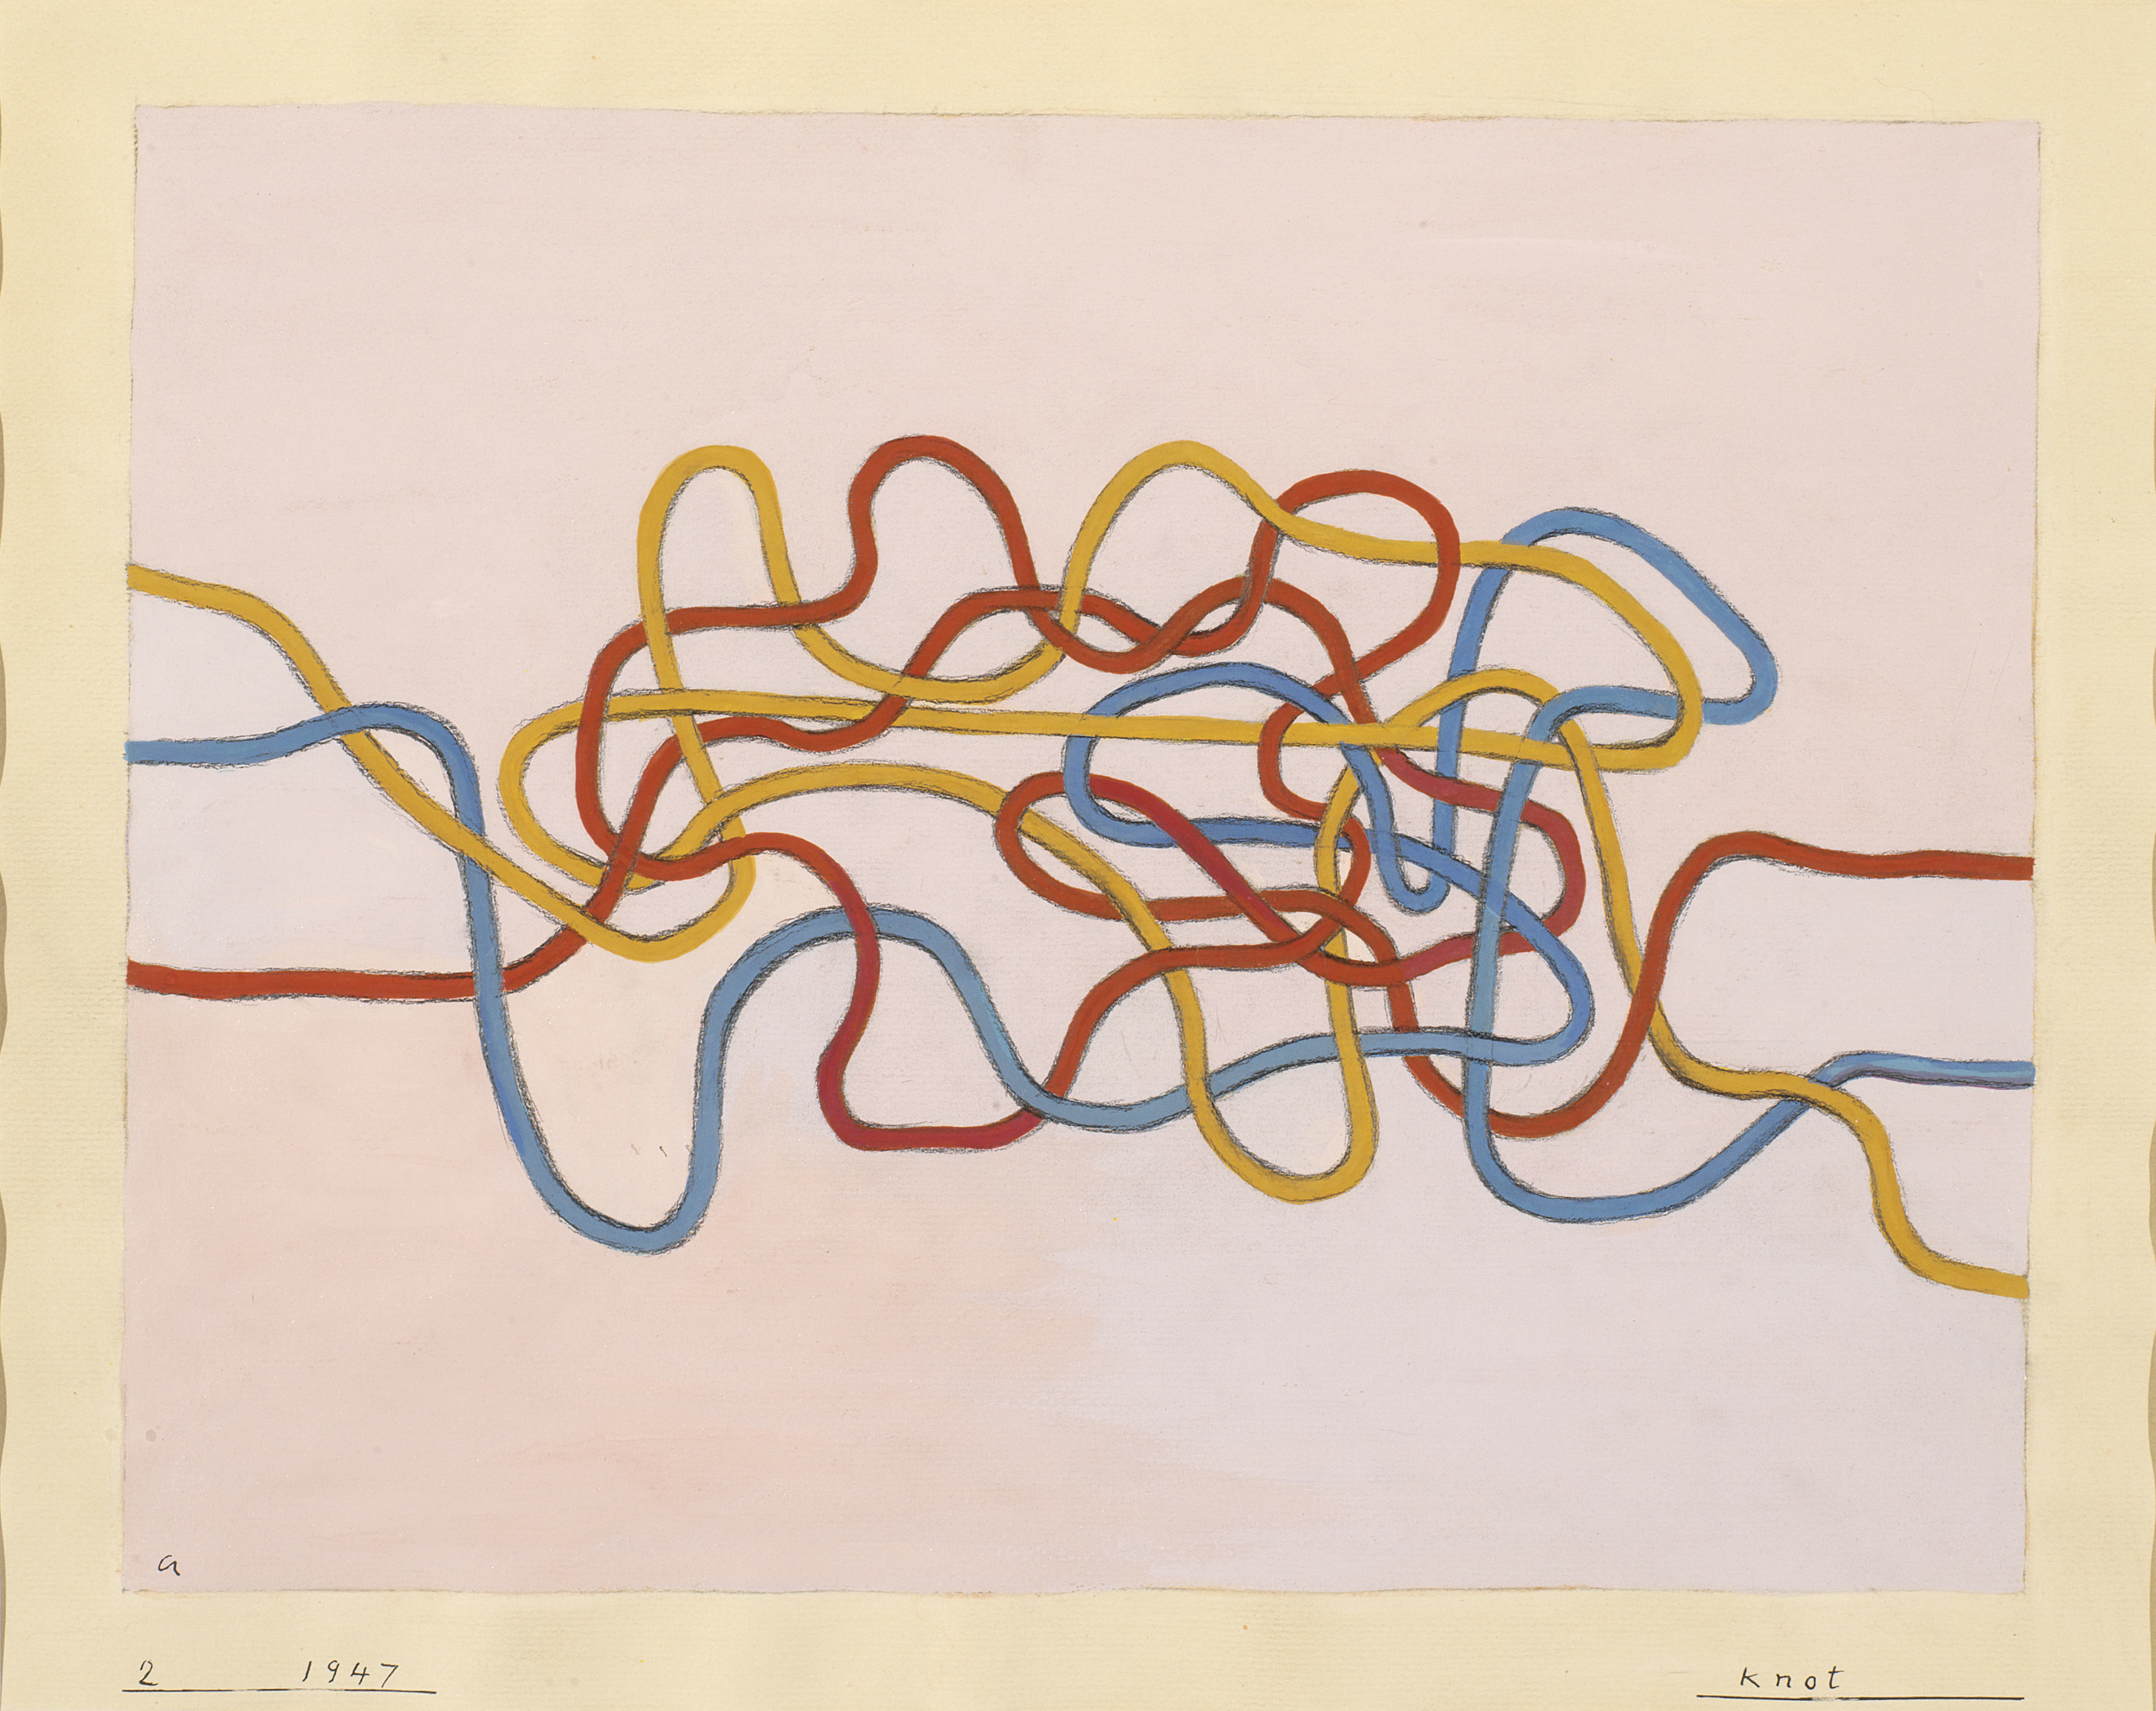 leap before you look black mountain college hammer museum anni albers knot 2 1947